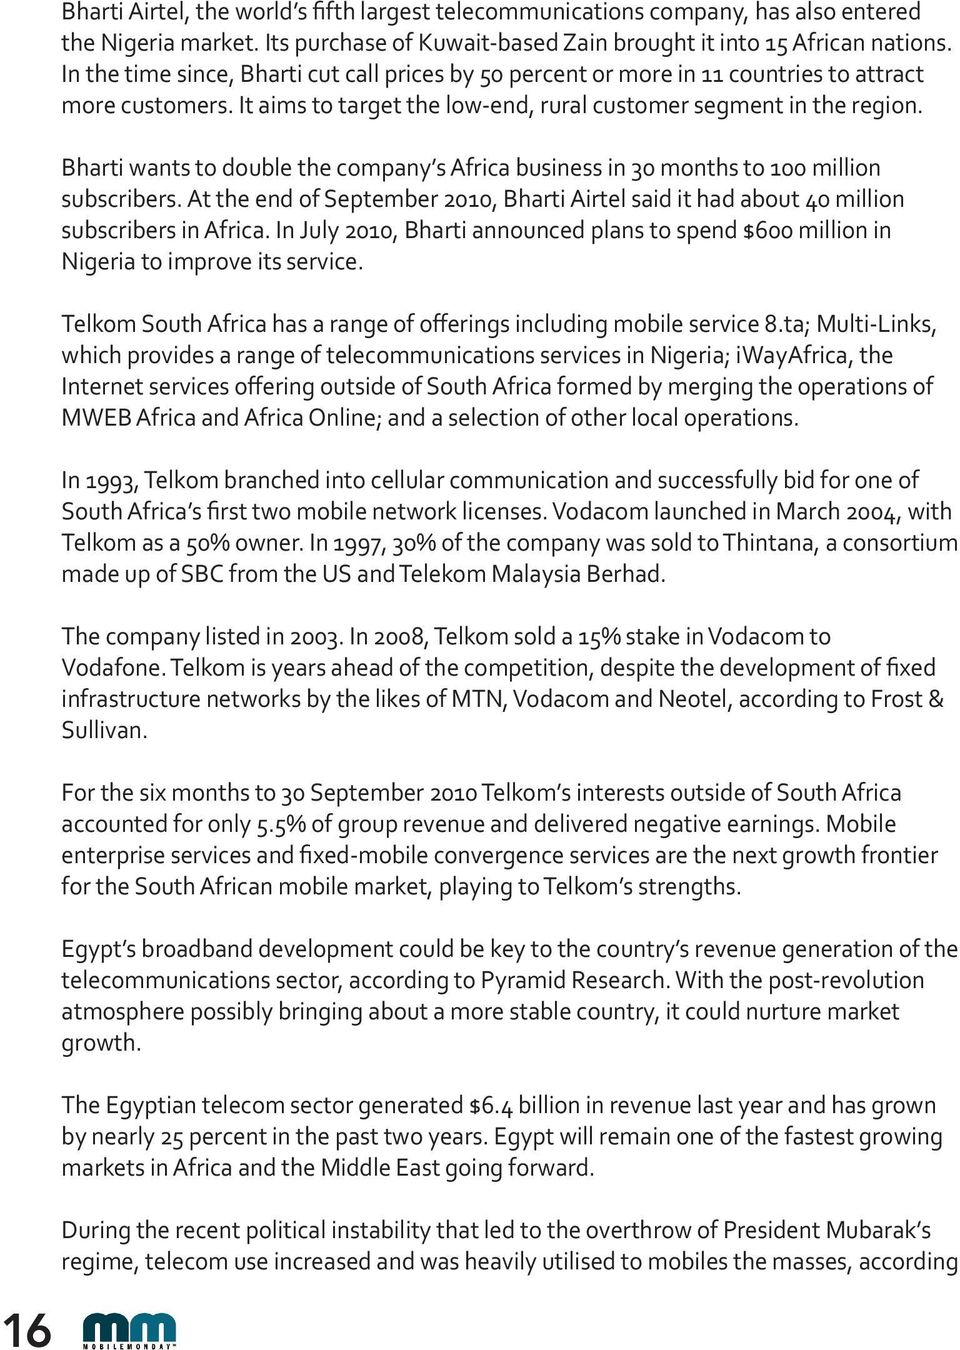 Bharti wants to double the company s Africa business in 30 months to 100 million subscribers. At the end of September 2010, Bharti Airtel said it had about 40 million subscribers in Africa.